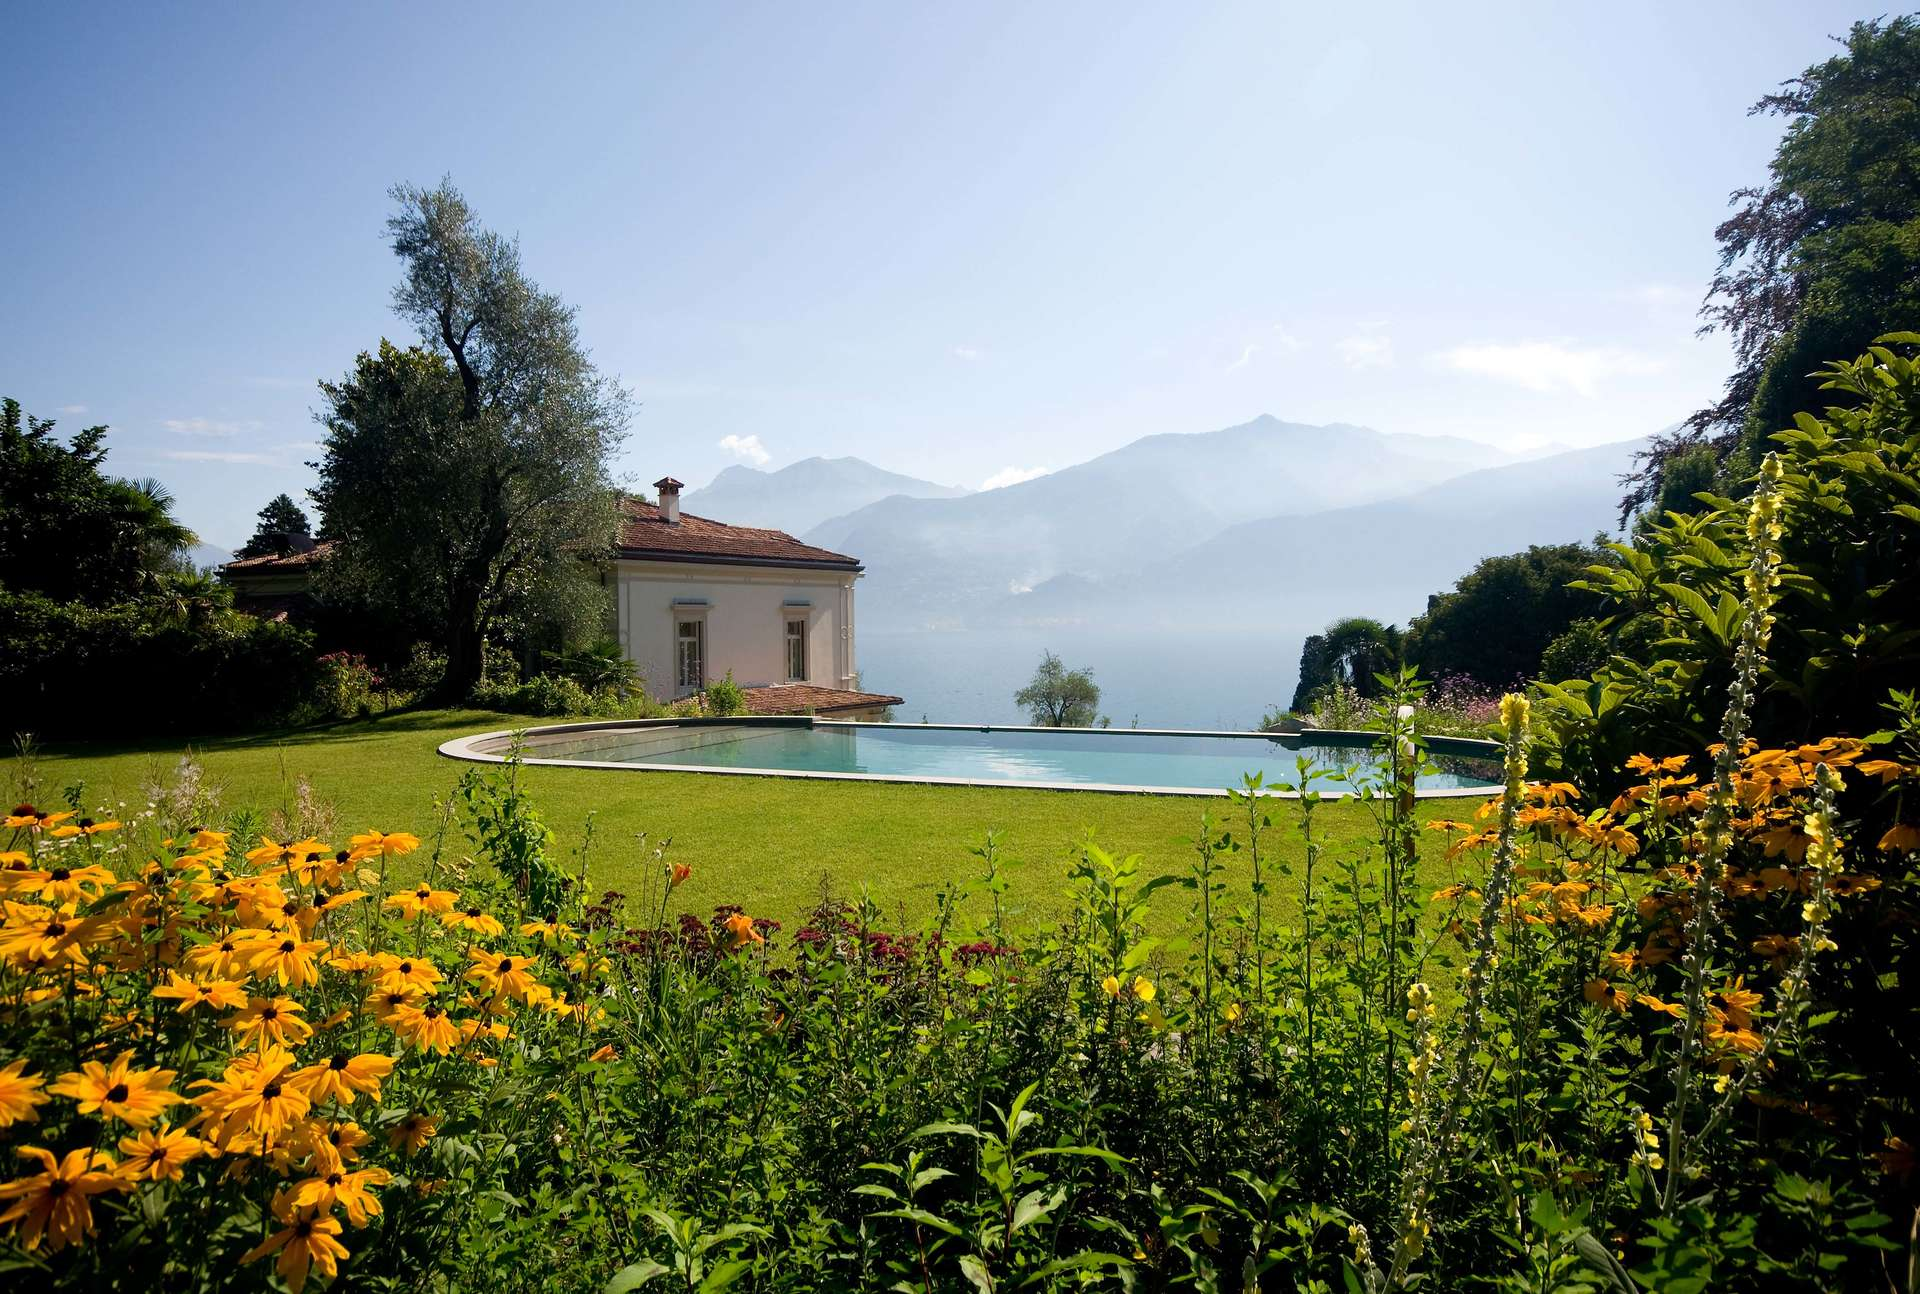 Luxury vacation rentals europe - Italy - Lombardy - Lake como - Benessere - Image 1/39